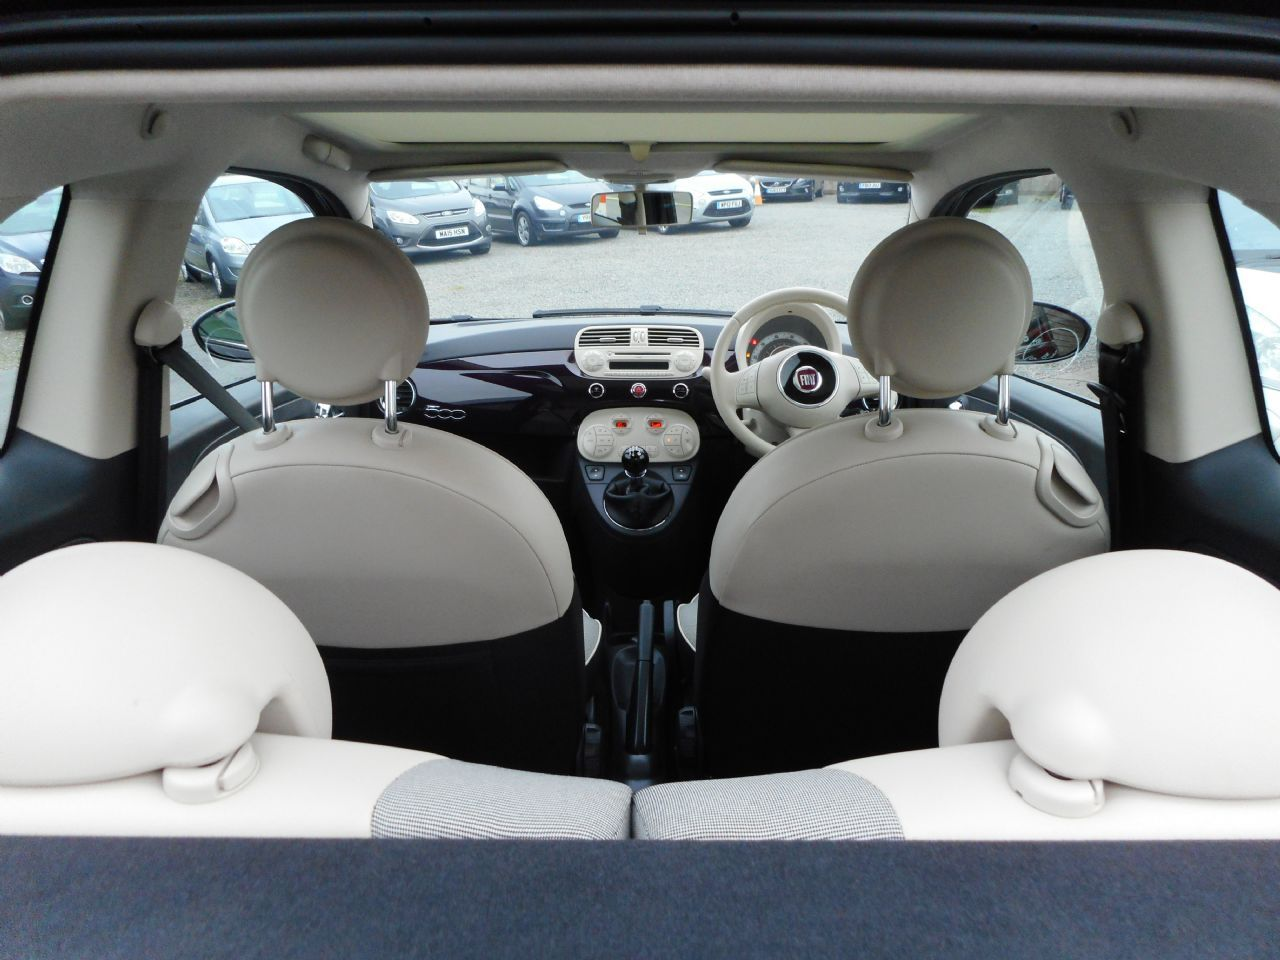 FIAT 500 1.2i Lounge S/S - Picture 7